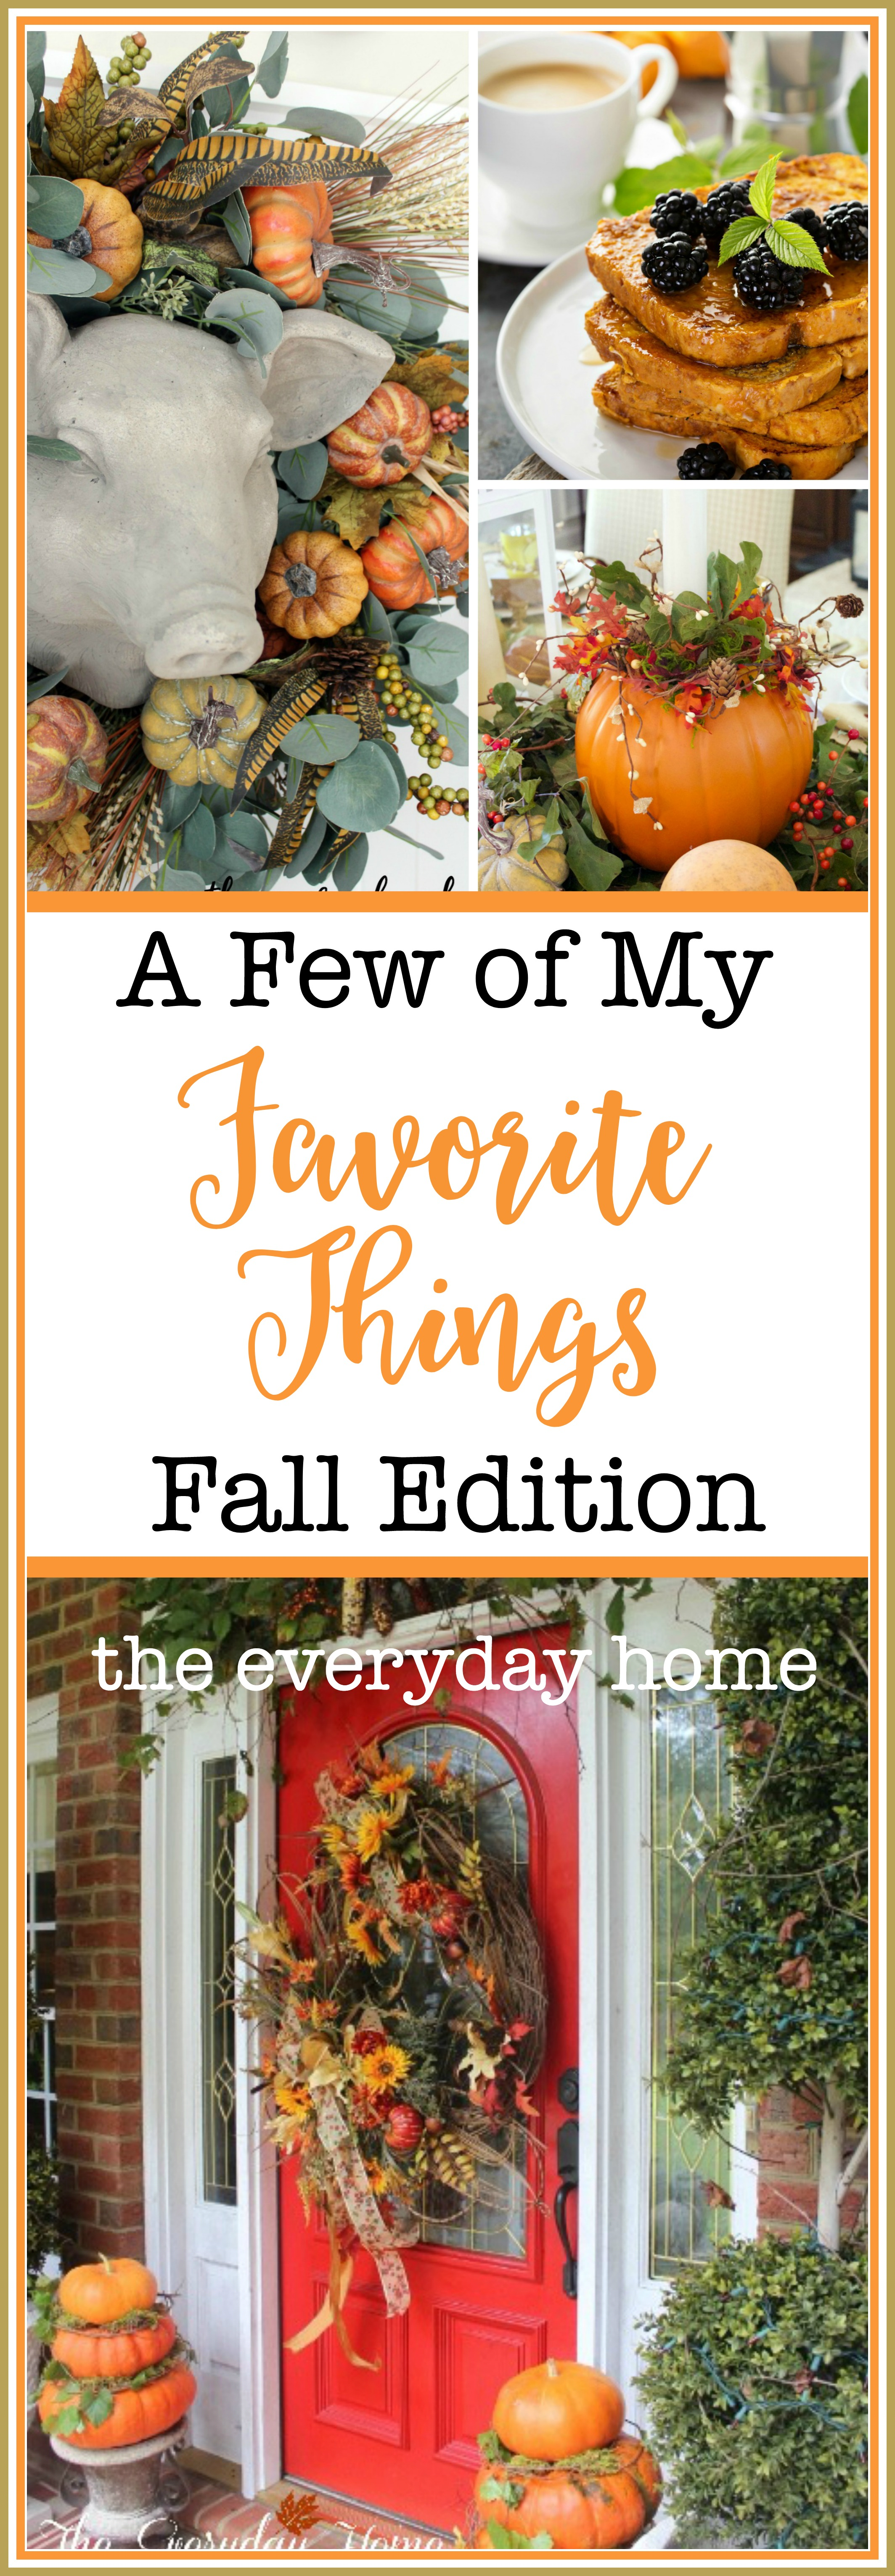 A Few of My Favorite Things for Fall | The Everyday Home